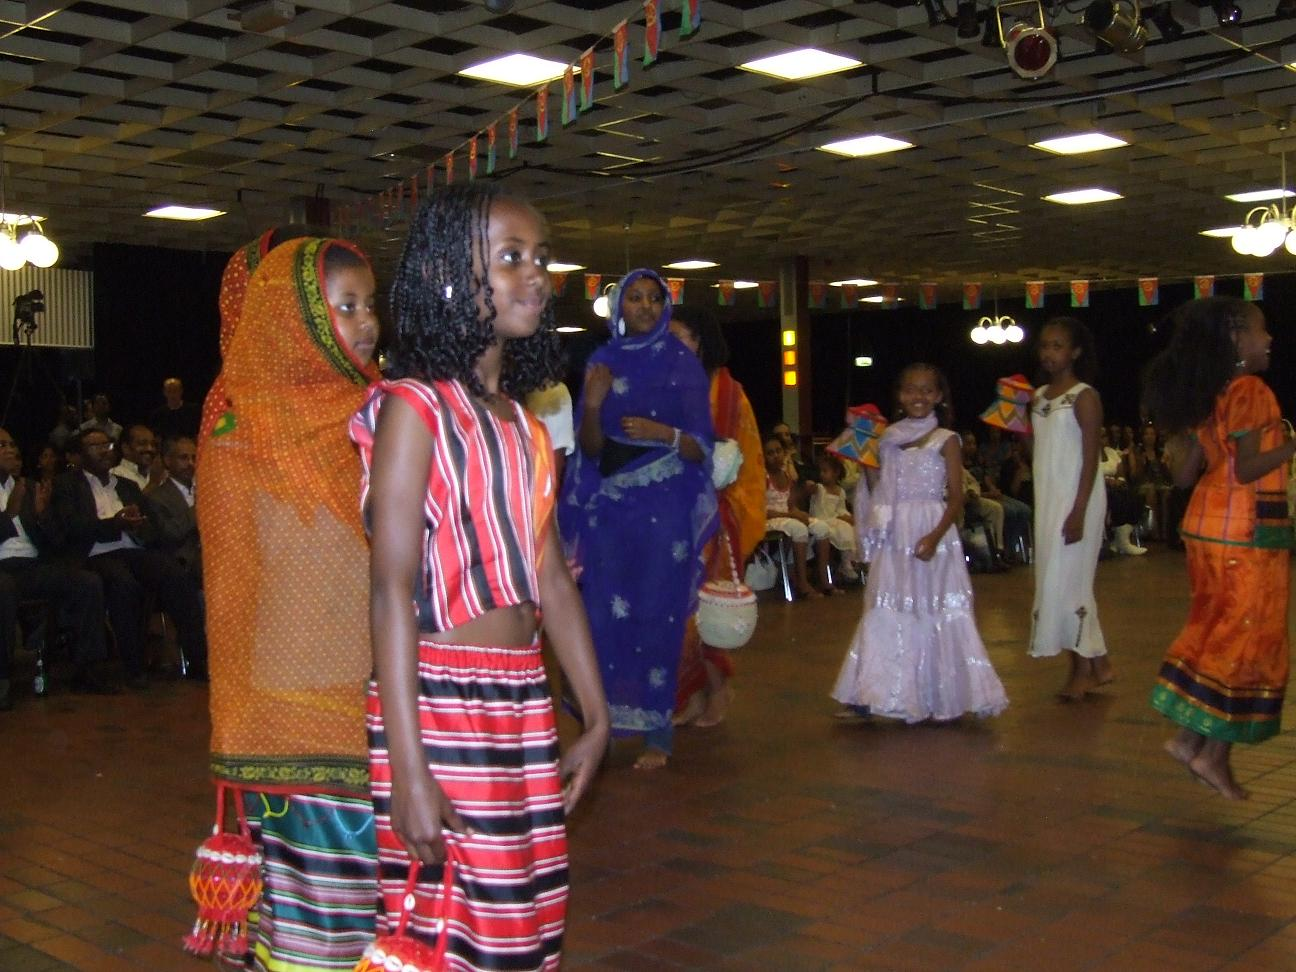 Pictures of the festival eritrea 2008 in utrecht holland